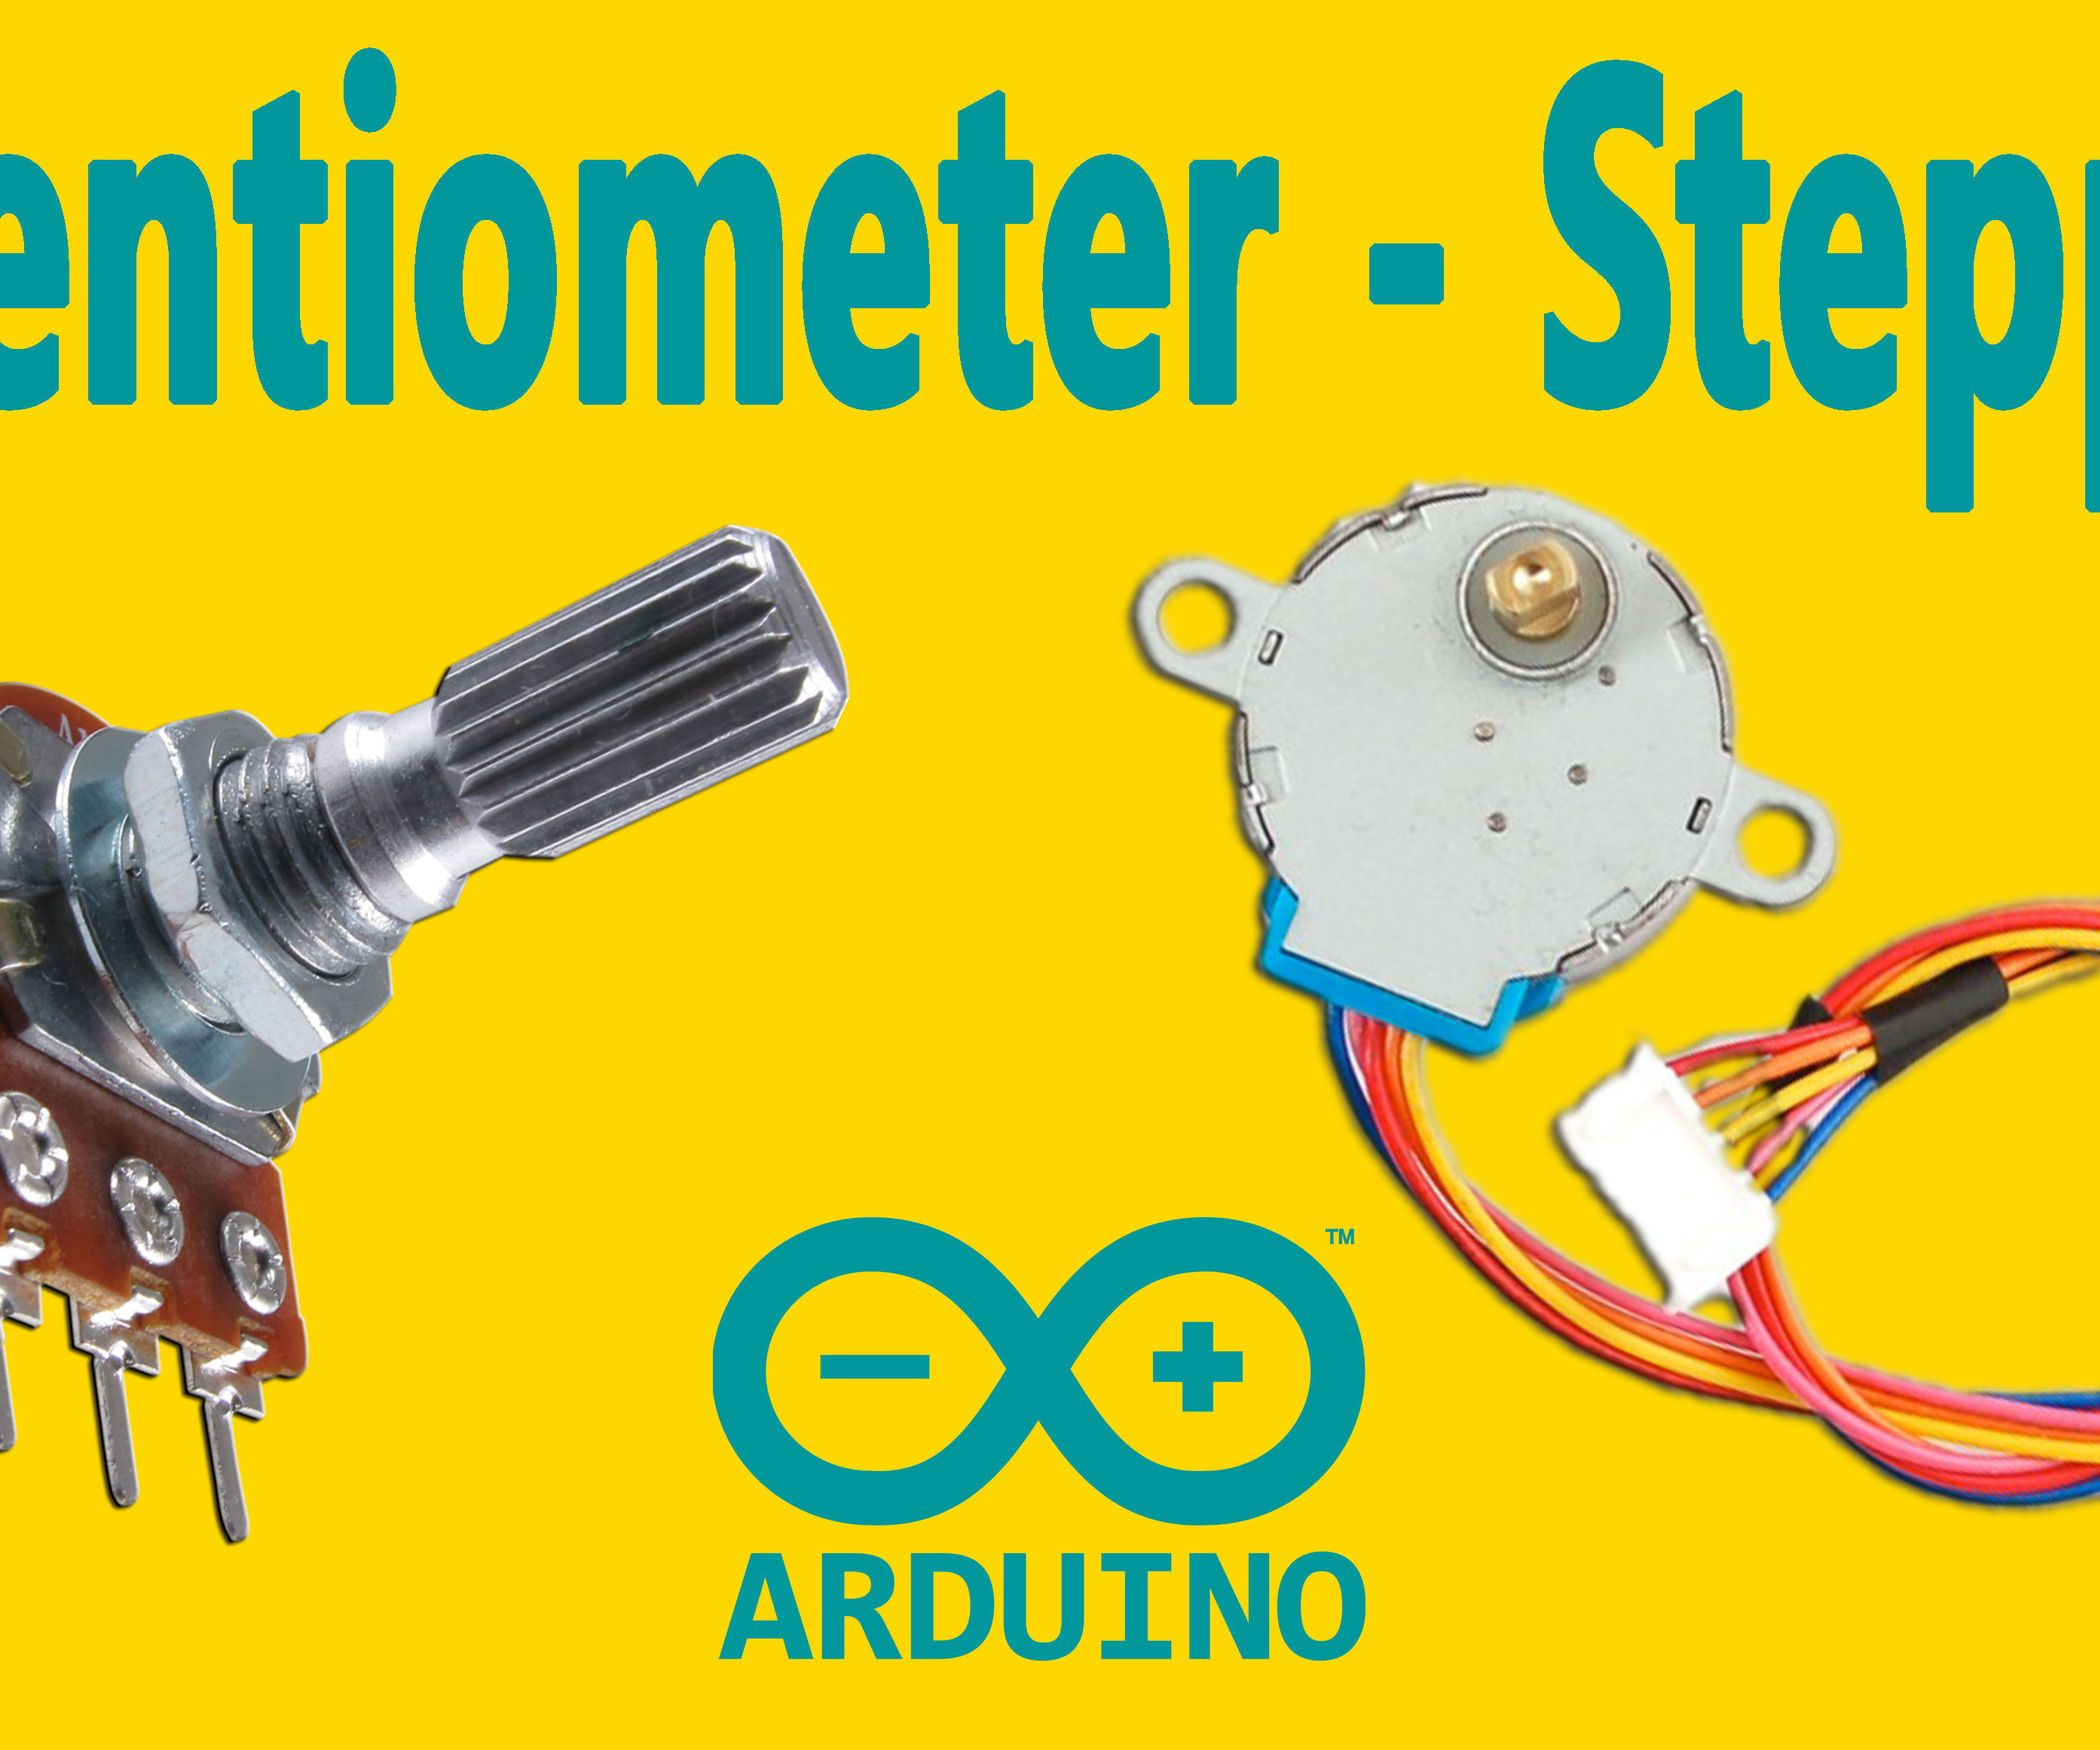 Arduino How To Control A Stepper Motor With Potentiometer 12v Geared 4 Phase 5 Wires For Experiment This Instructable Is The Written Version Of My Youtube Video That Ive Uploaded Recently